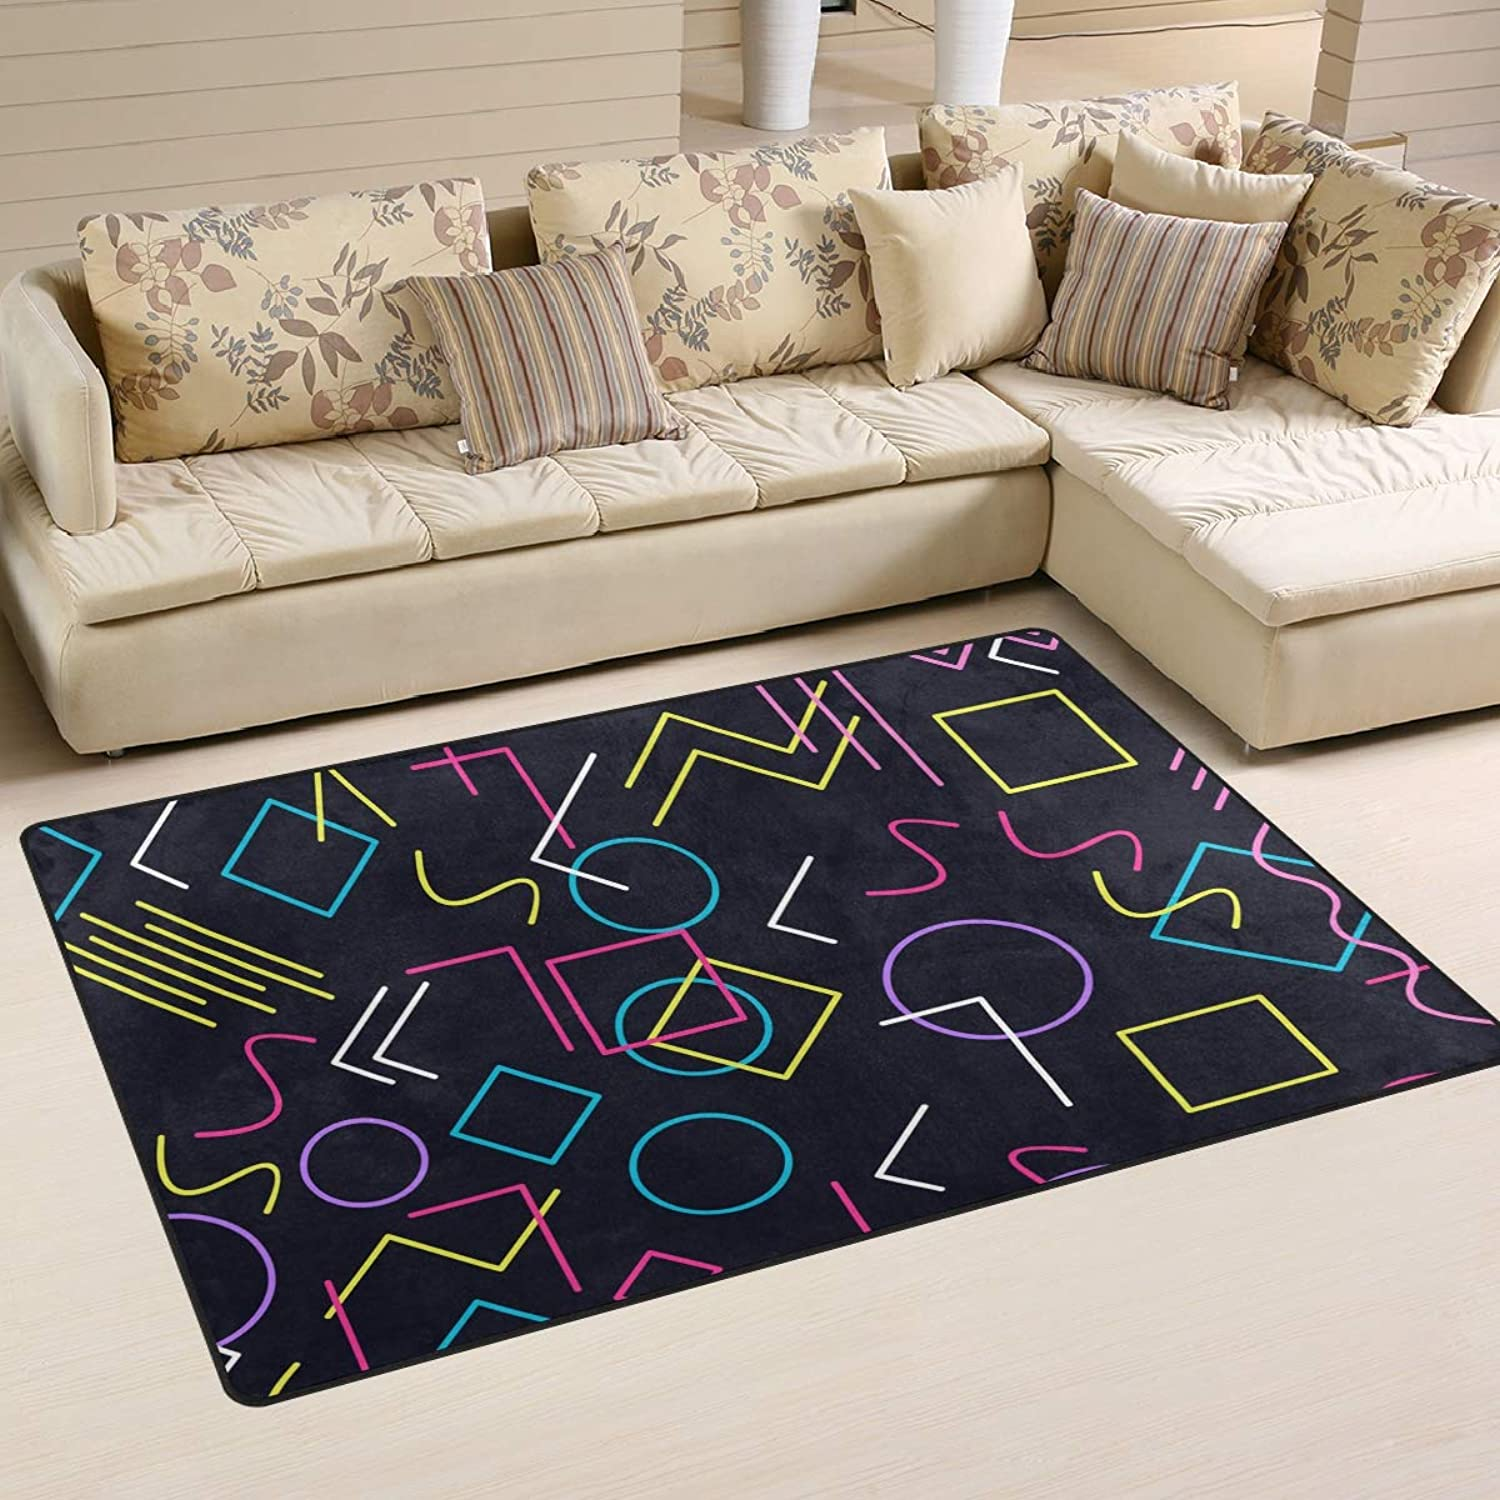 FANTAZIO Area Rug color Geometry Letter Entry doormats Straight Carpet Gripper Polyester for Corners and Edge Anti-Curling Ideal Rug Stopper for Kitchen Bathroom 31x20in 60x39in